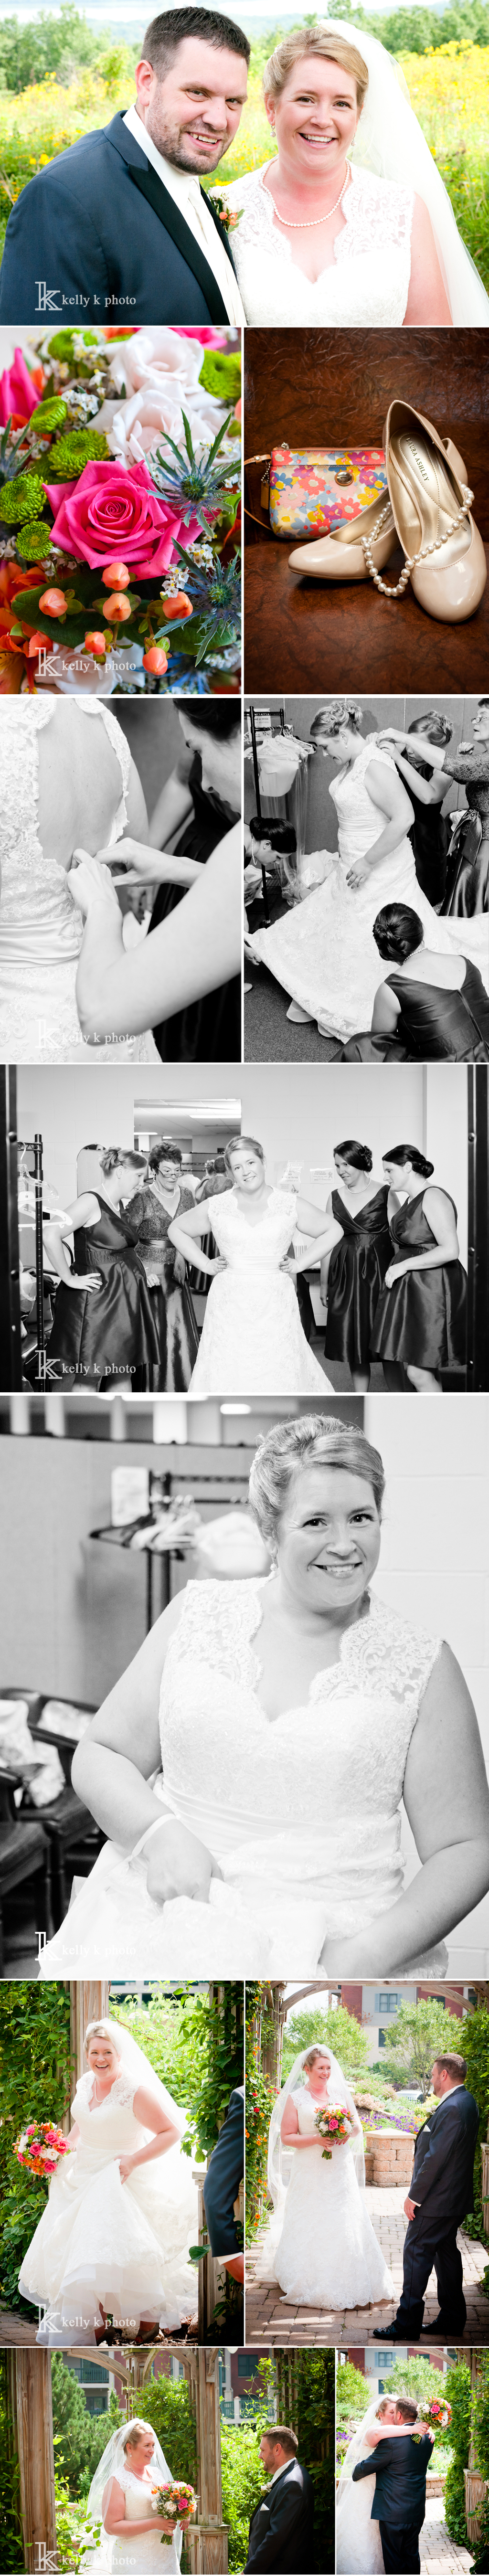 KellyKPhoto_SpindlerWedding1